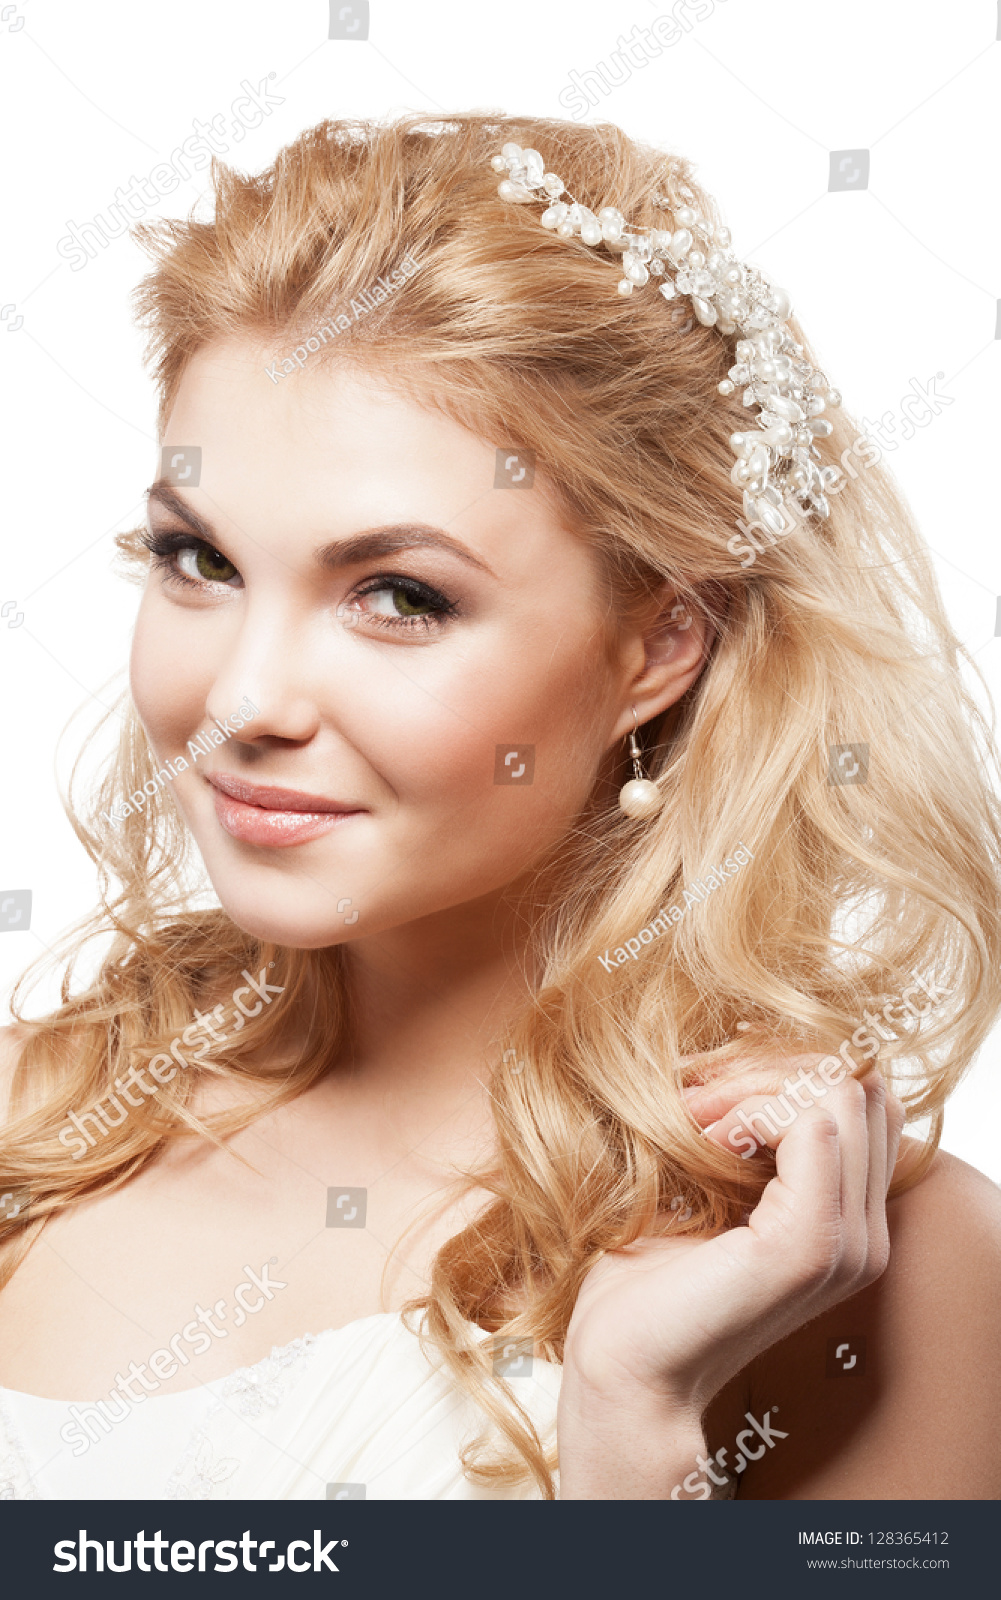 Beautiful Blonde Bride Beauty Wedding Coiffure Stock Photo Edit Now